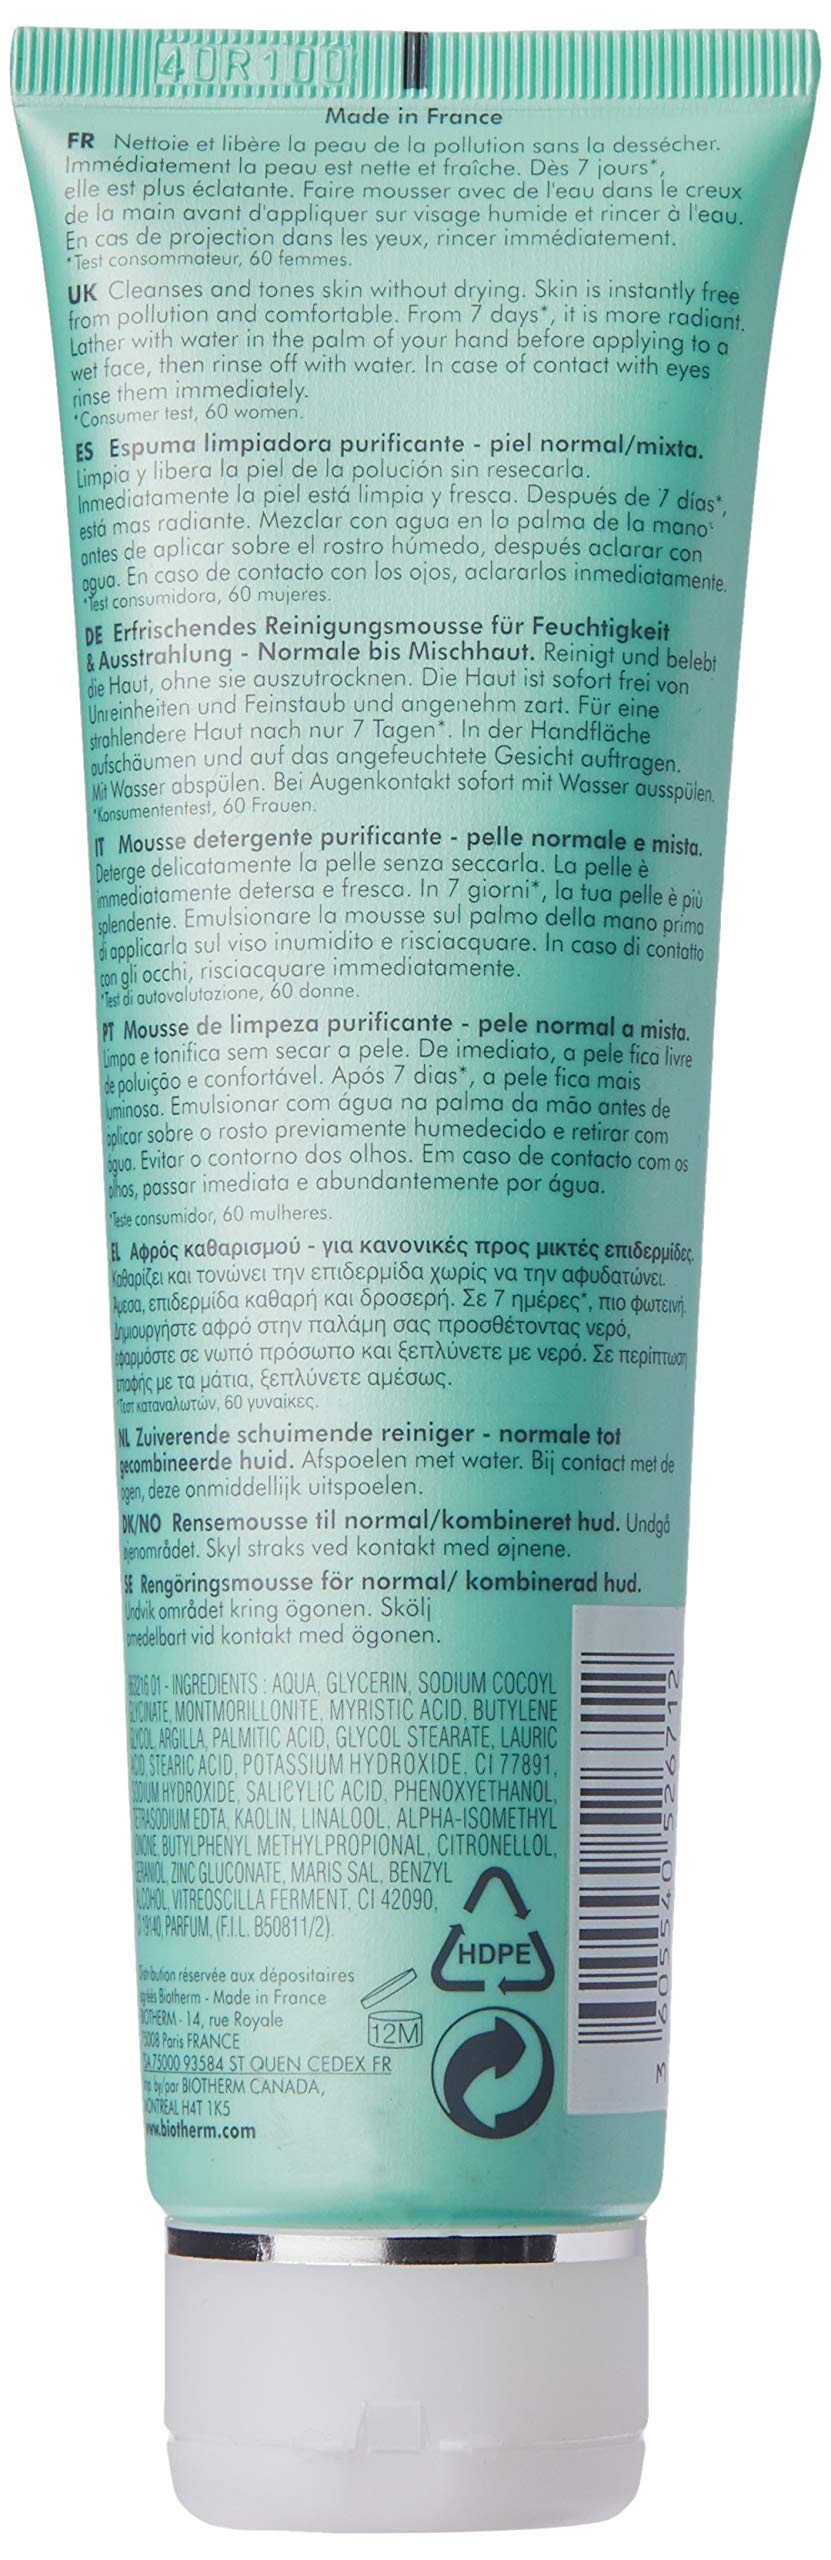 Biotherm Biosource Hydra-Mineral Cleanser Toning Mousse (N-C) Skin for Unisex, 5.07 Ounce by Biotherm (Image #3)